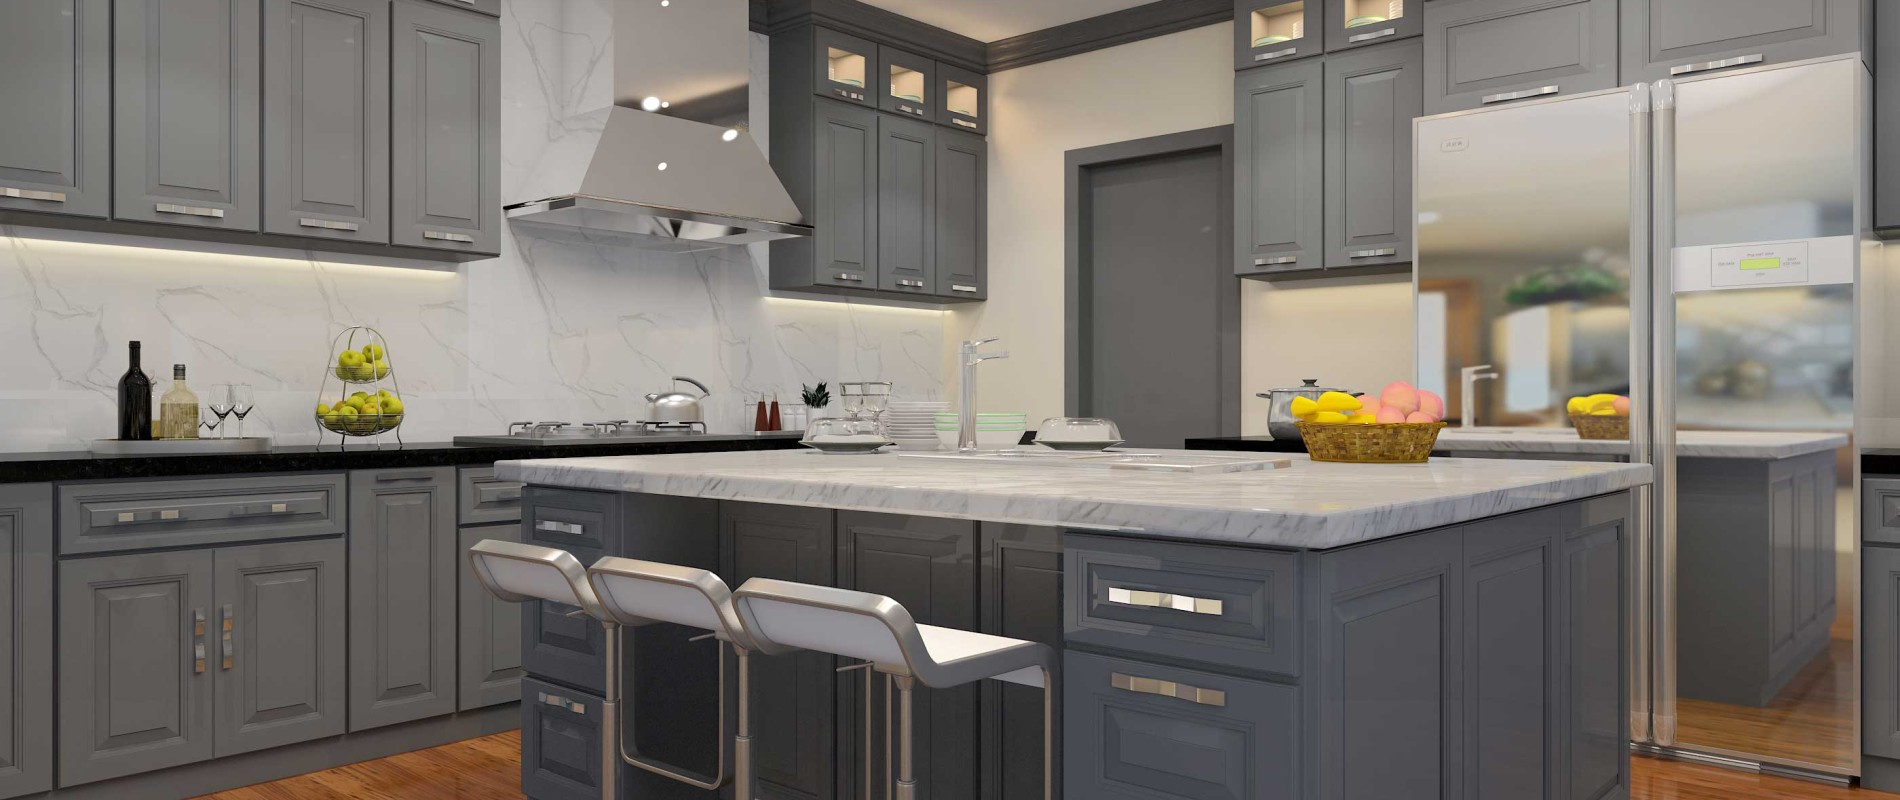 Kitchen Cabinets Wholesale Houston Texas Home Page